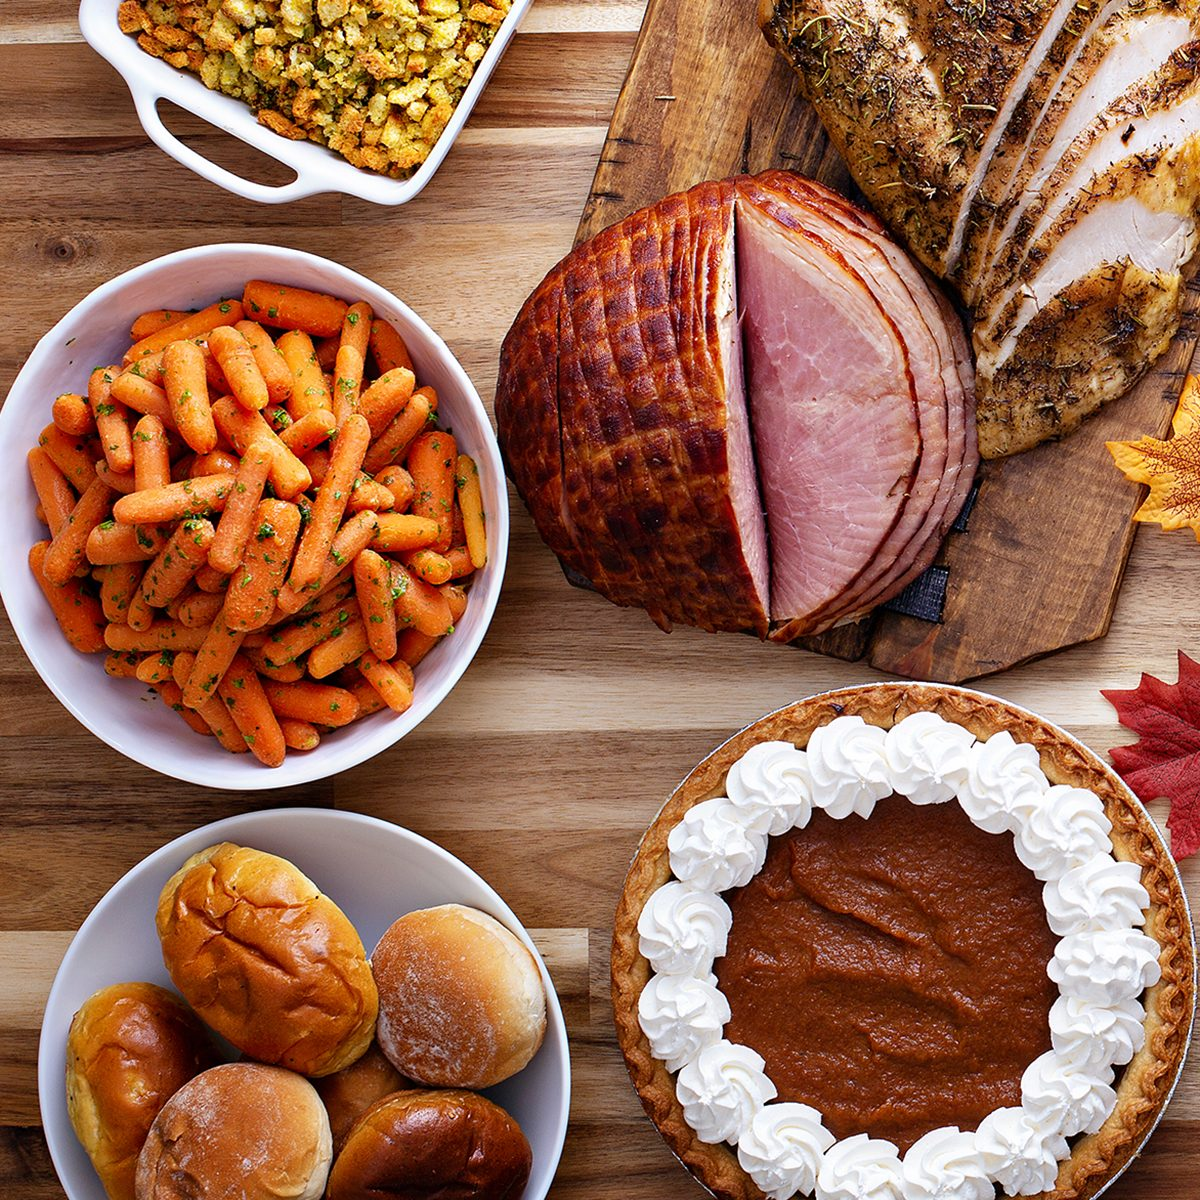 Thanksgiving table with roasted turkey, sliced ham and side dishes; Shutterstock ID 1178474017; Job (TFH, TOH, RD, BNB, CWM, CM): TOH